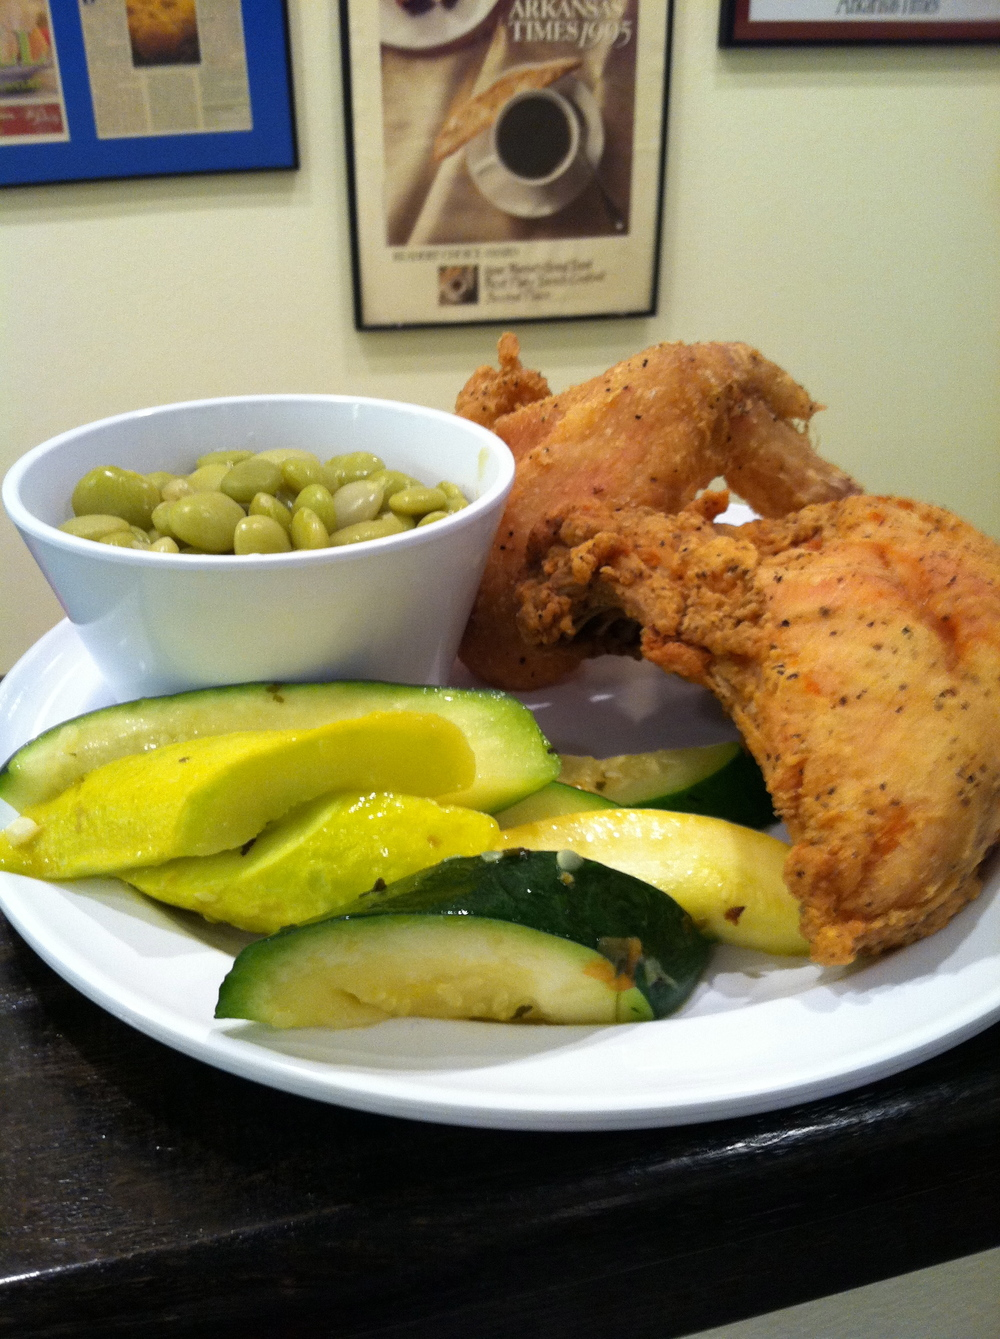 Fried chicken with squash and zucchini and lima beans